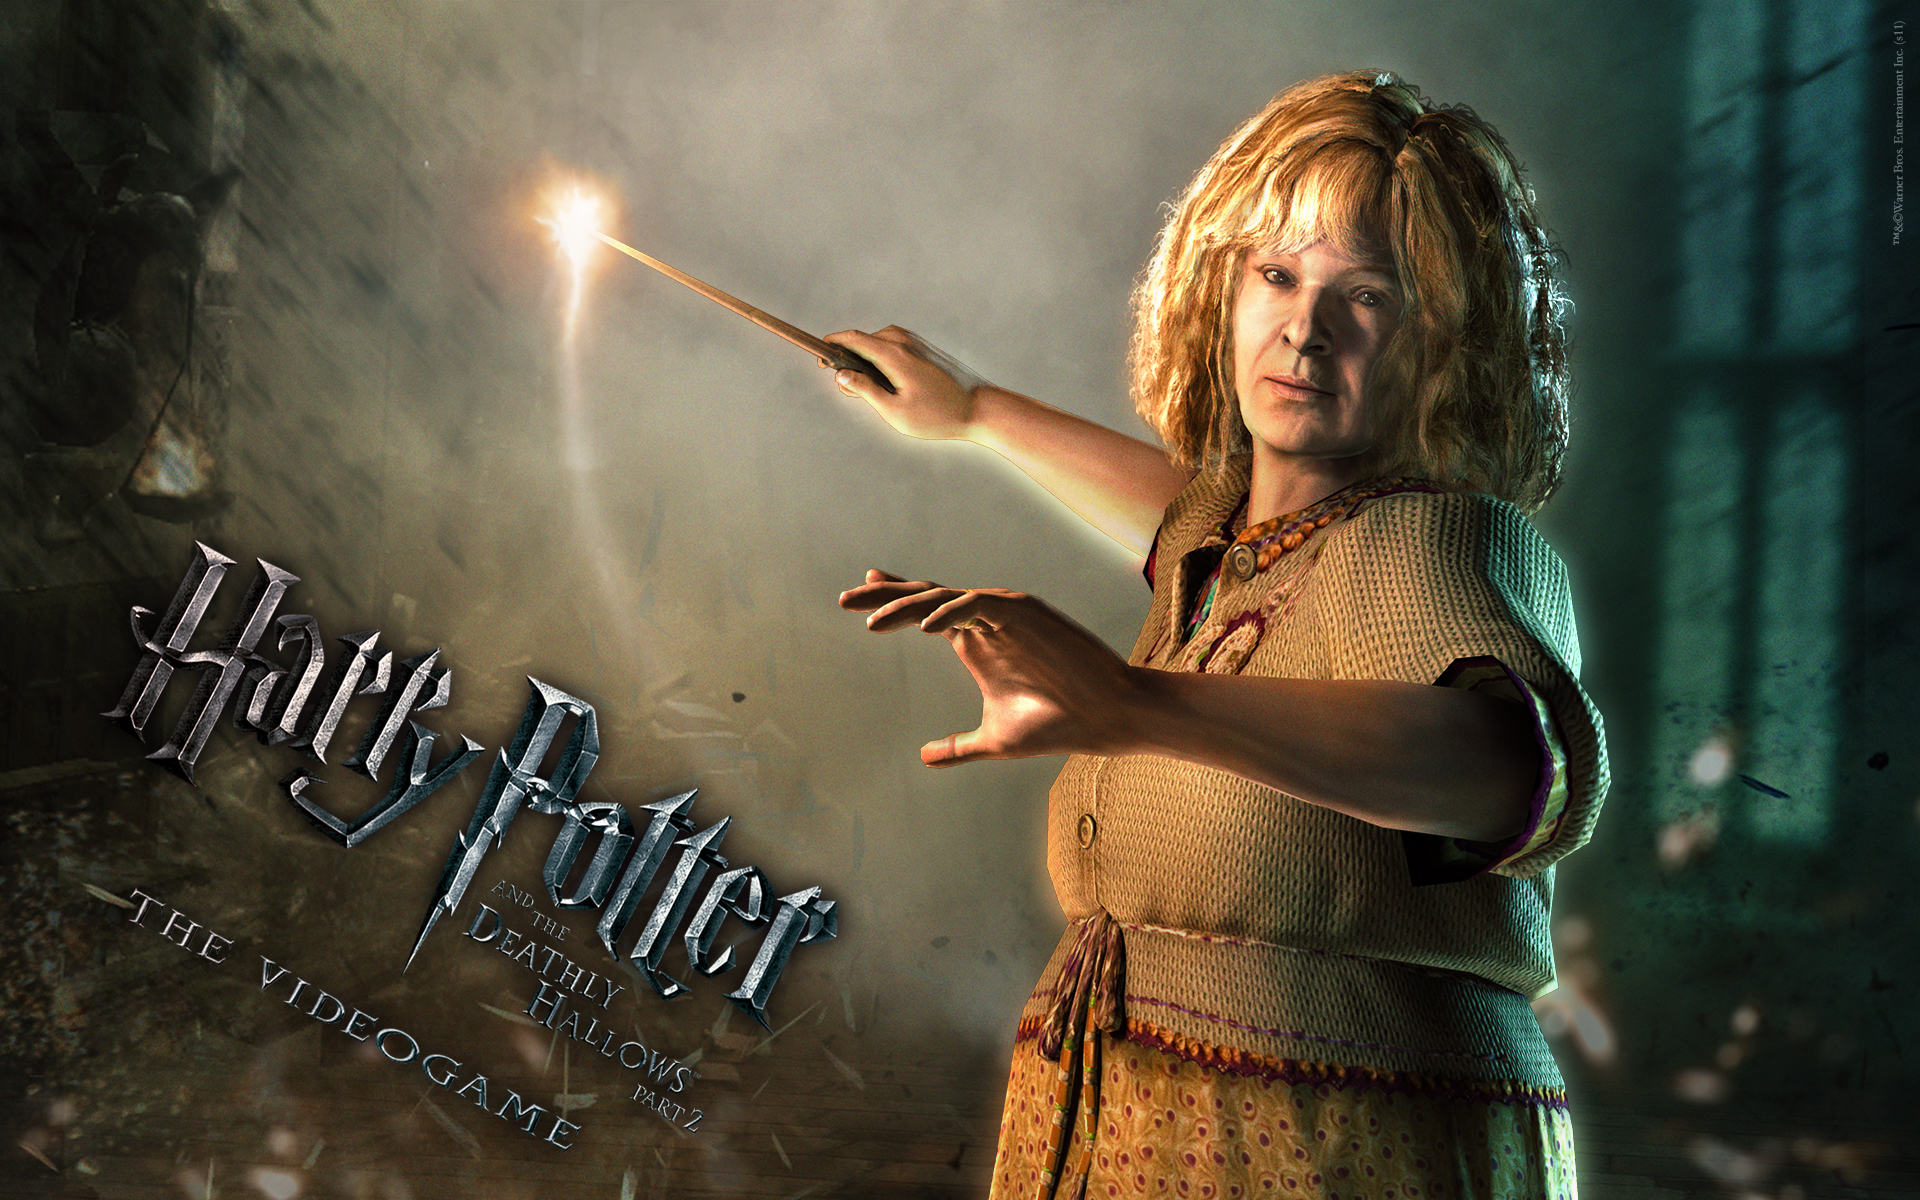 Molly Wallpaper From Harry Potter And The Deathly Hallows Part 2